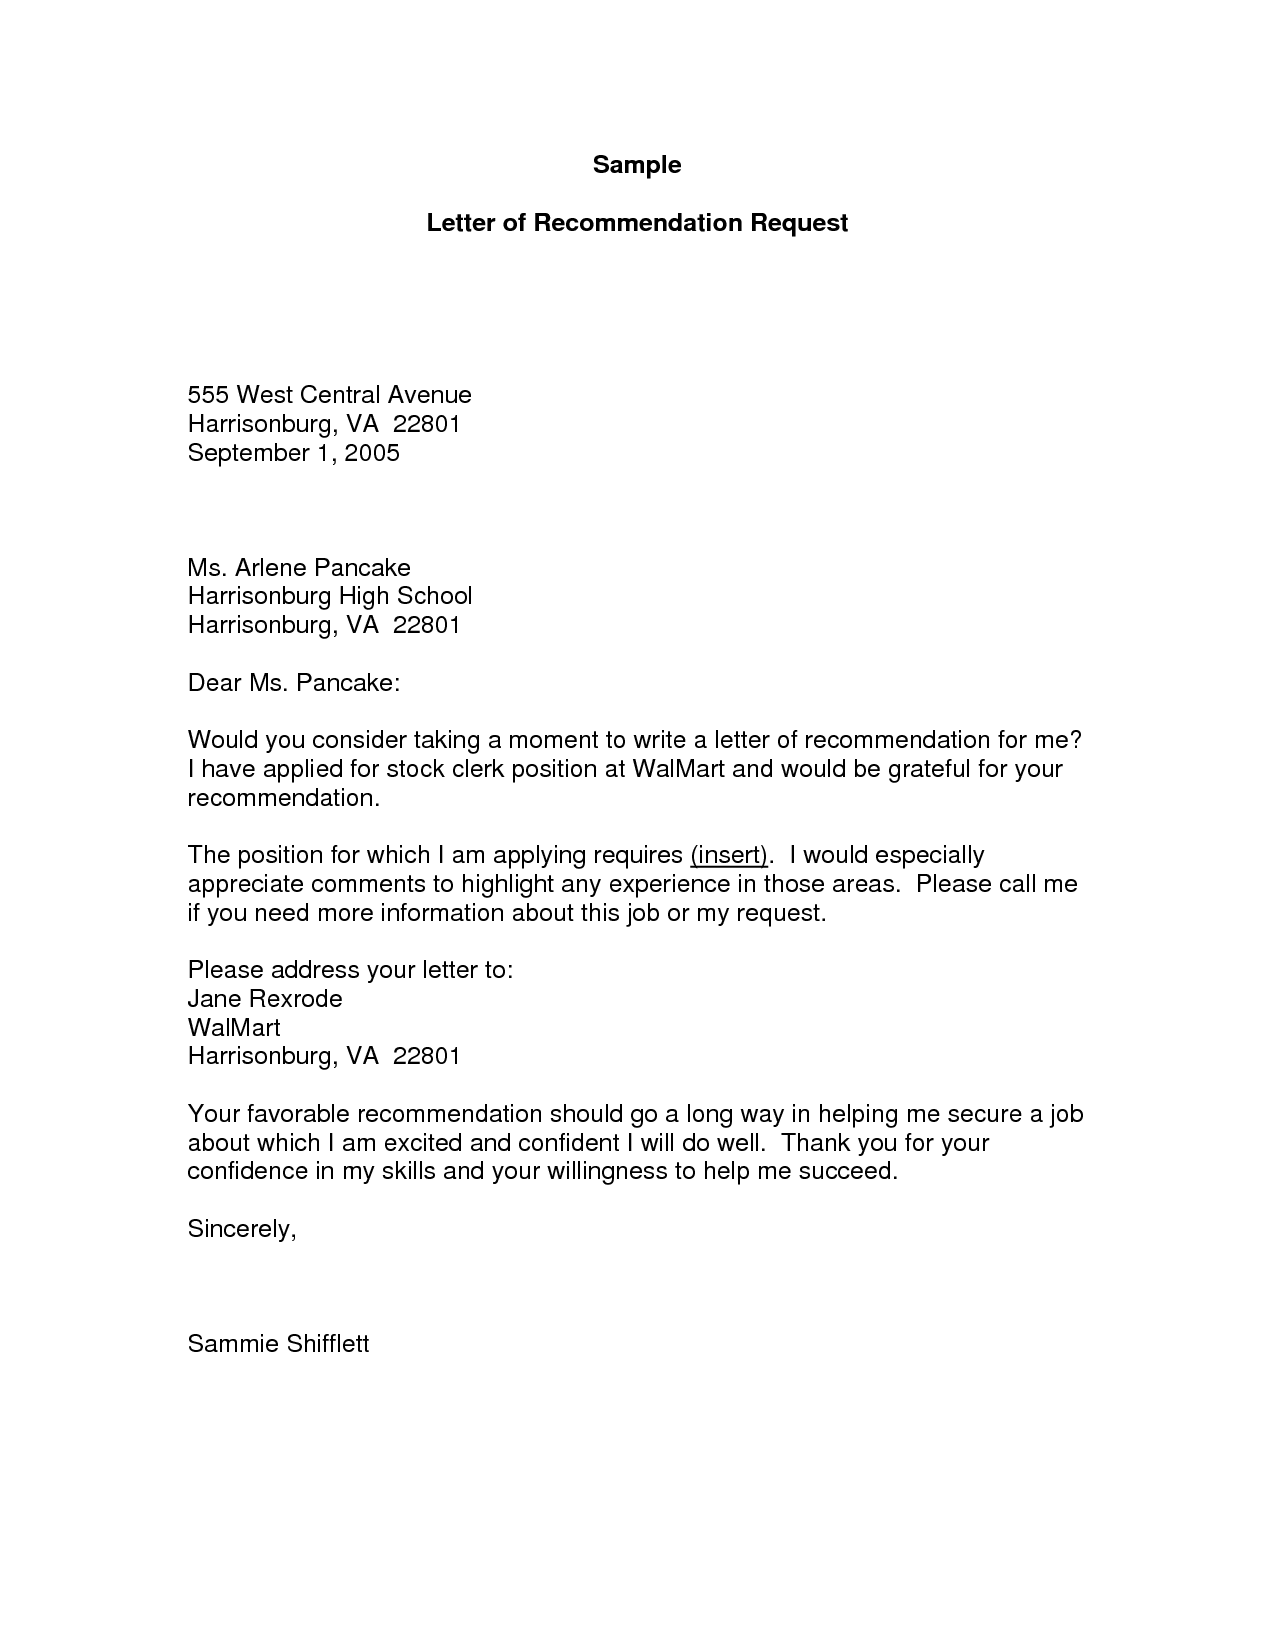 Sample For Recommendation Letter Request Cover Letter Templates